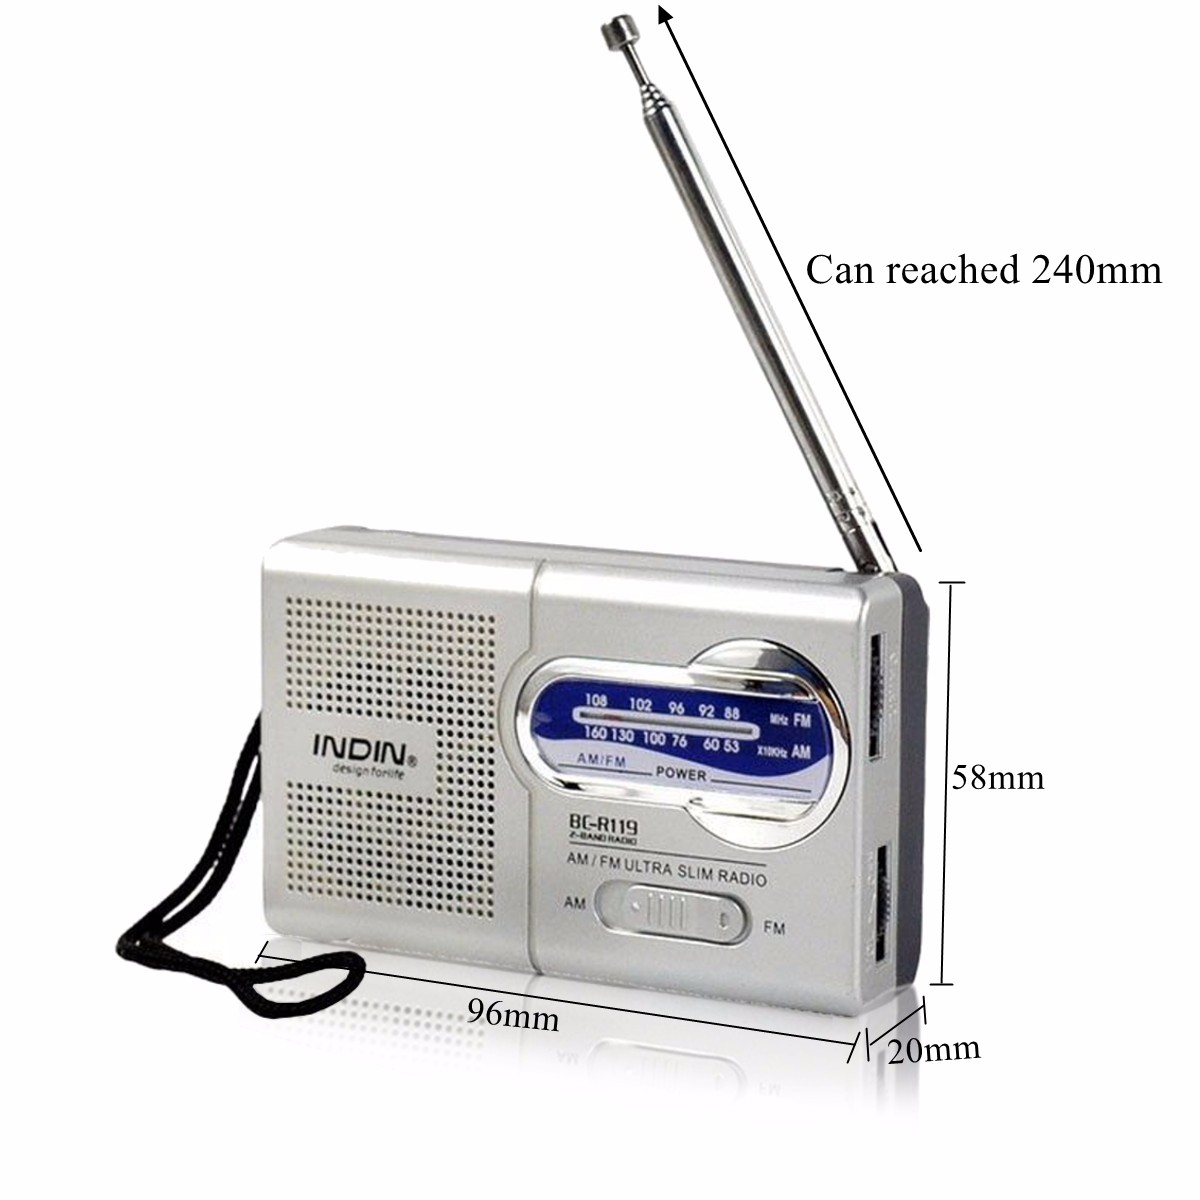 INDIN BC-R119 Universal Pocket AM FM Receiver Radio Antenna Built in Speaker